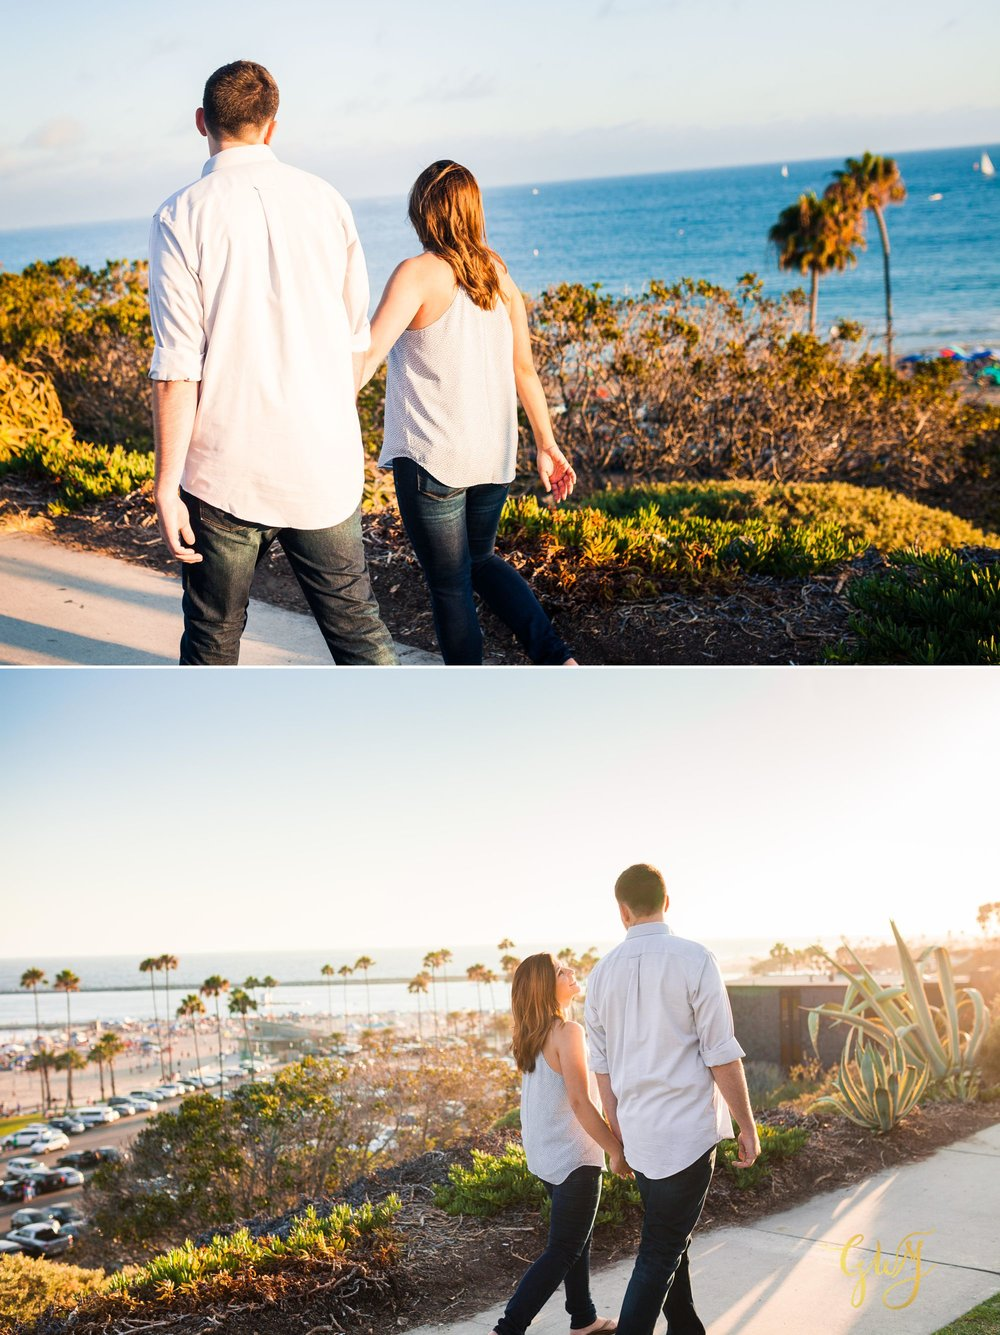 Allison + Jared Oak Canyon Nature Center Corona Del Mar Beach Sunset by Glass Woods Media 8.jpg